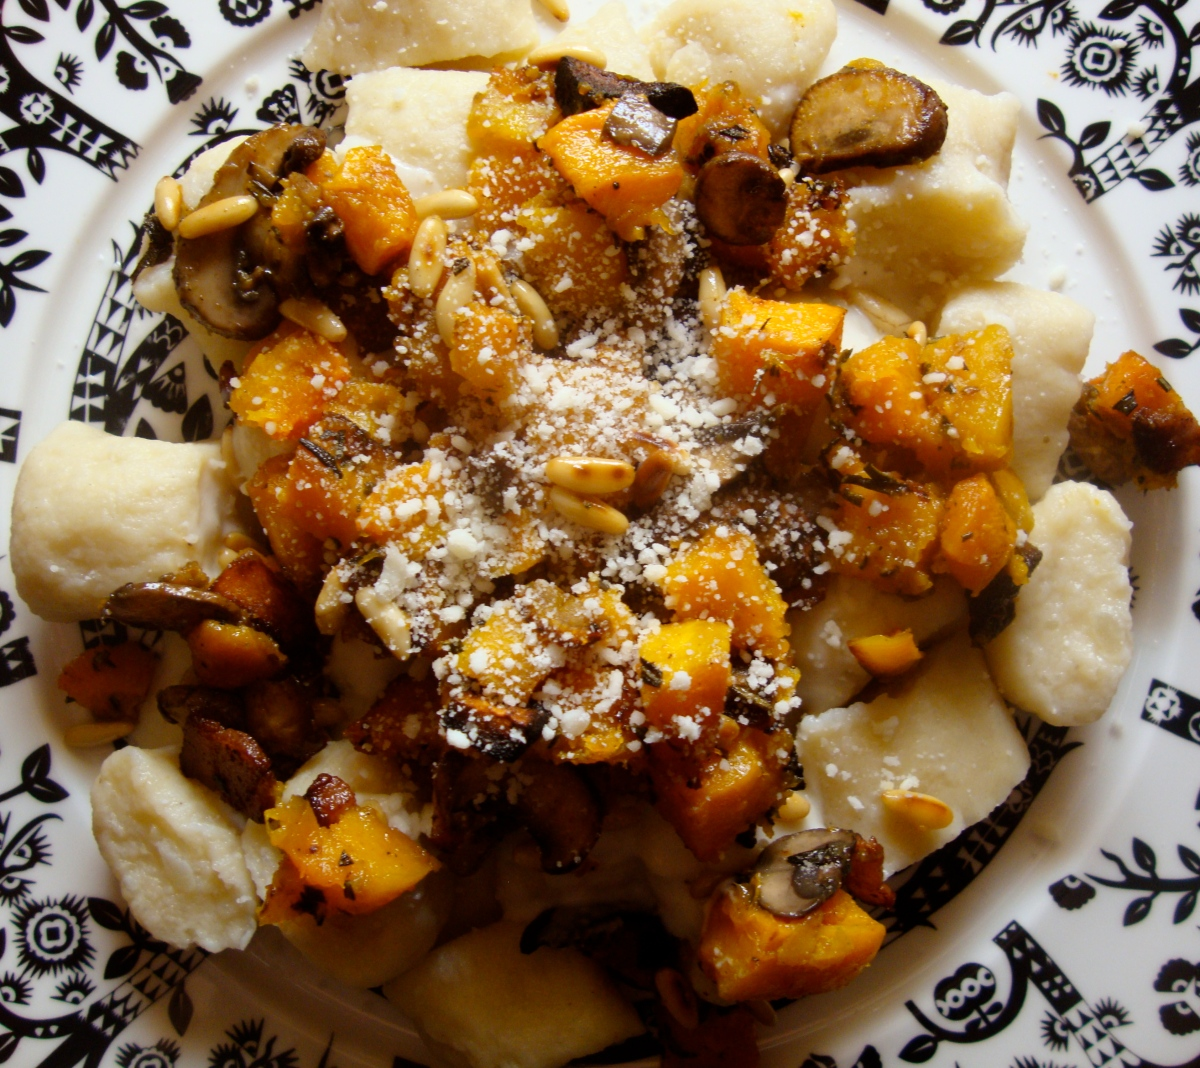 Chestnut Gnocchi with Squash, Mushrooms and Rosemary